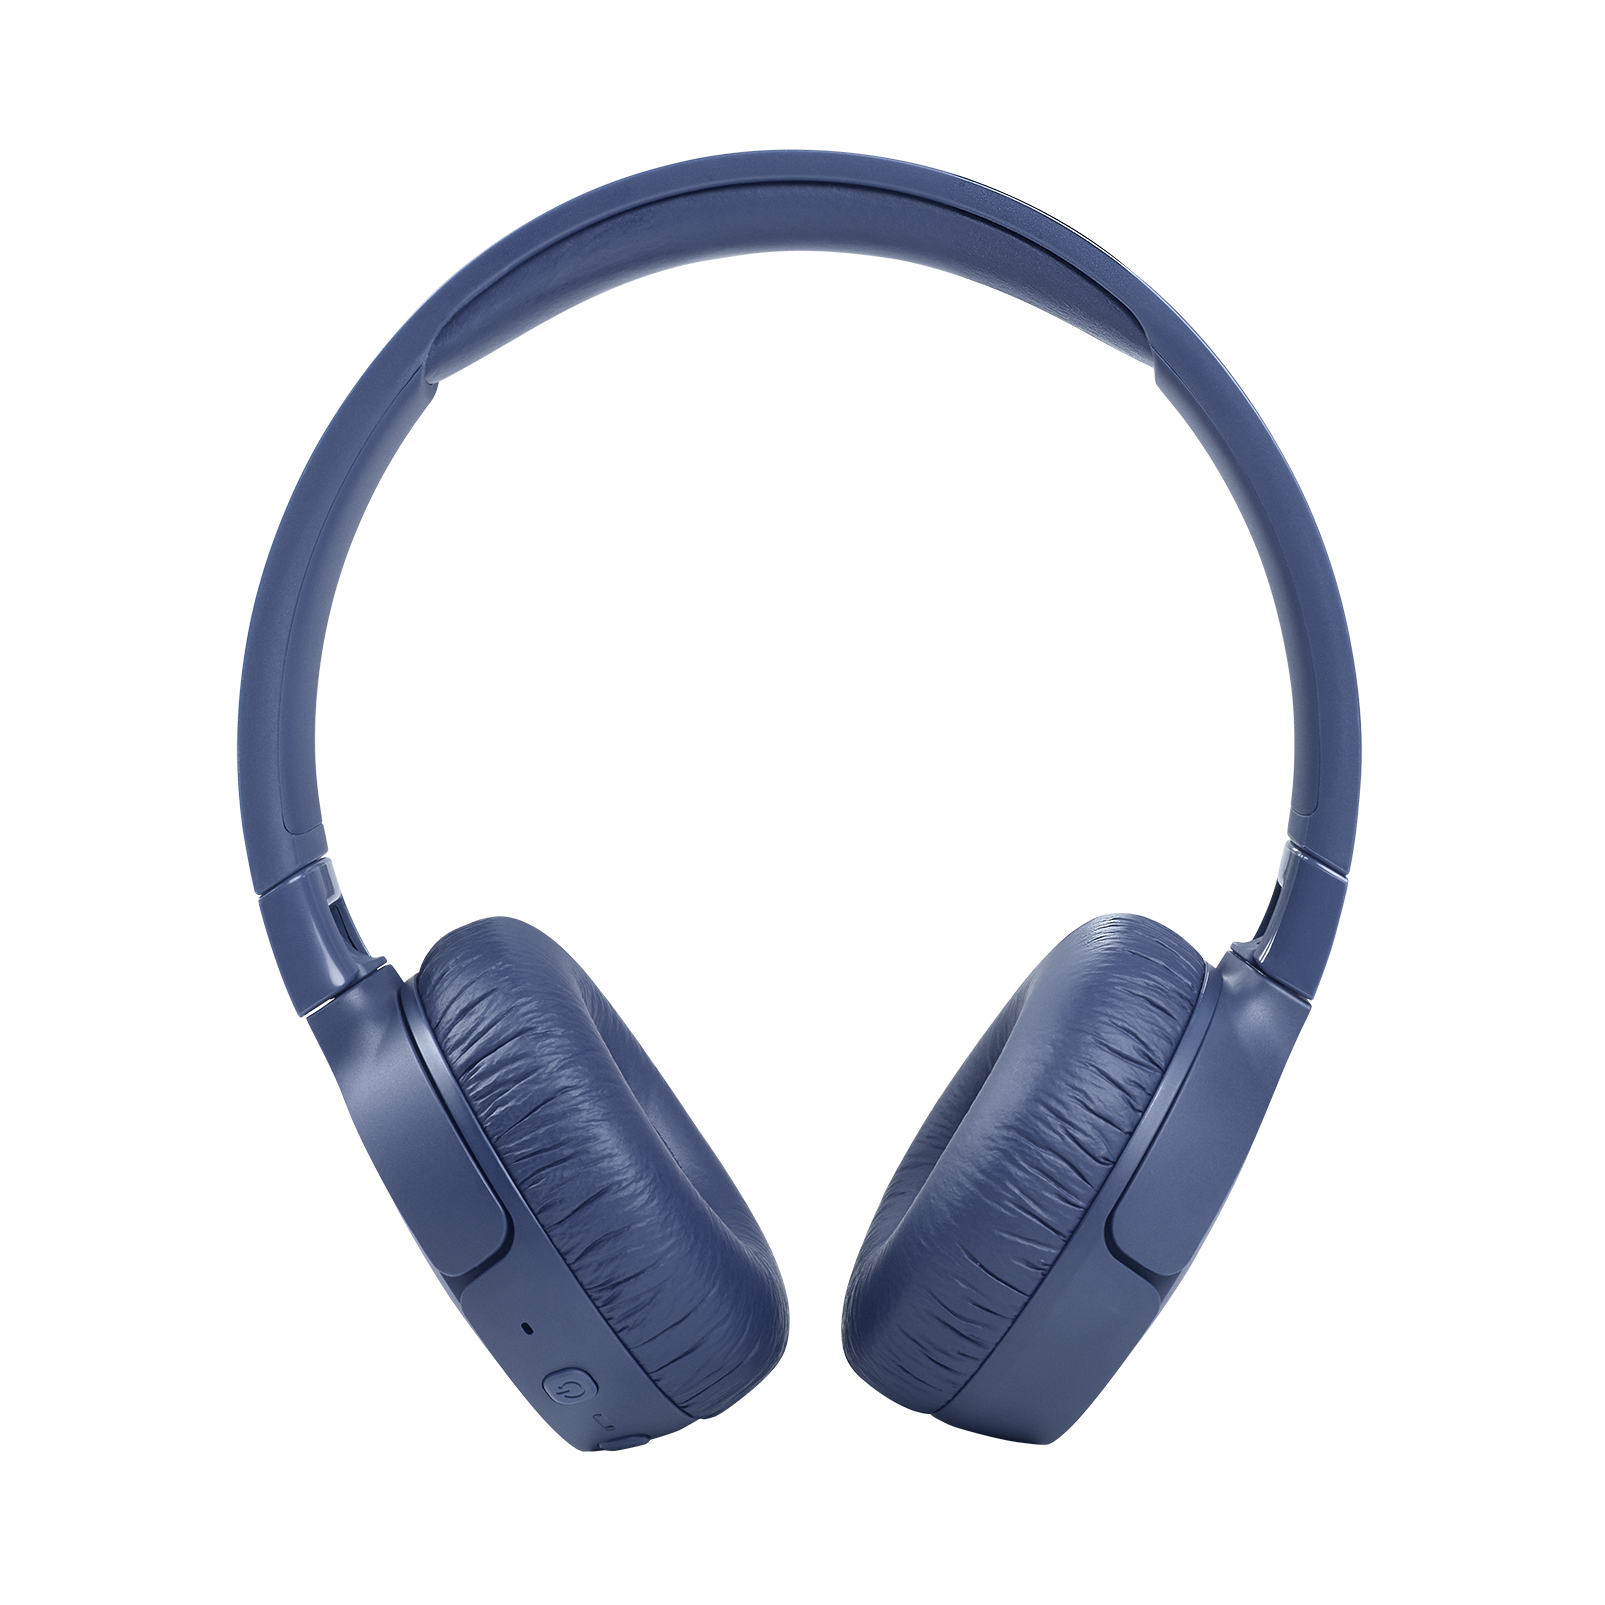 JBL Tune 660NC - Blue - Wireless, on-ear, active noise-cancelling headphones. - Front